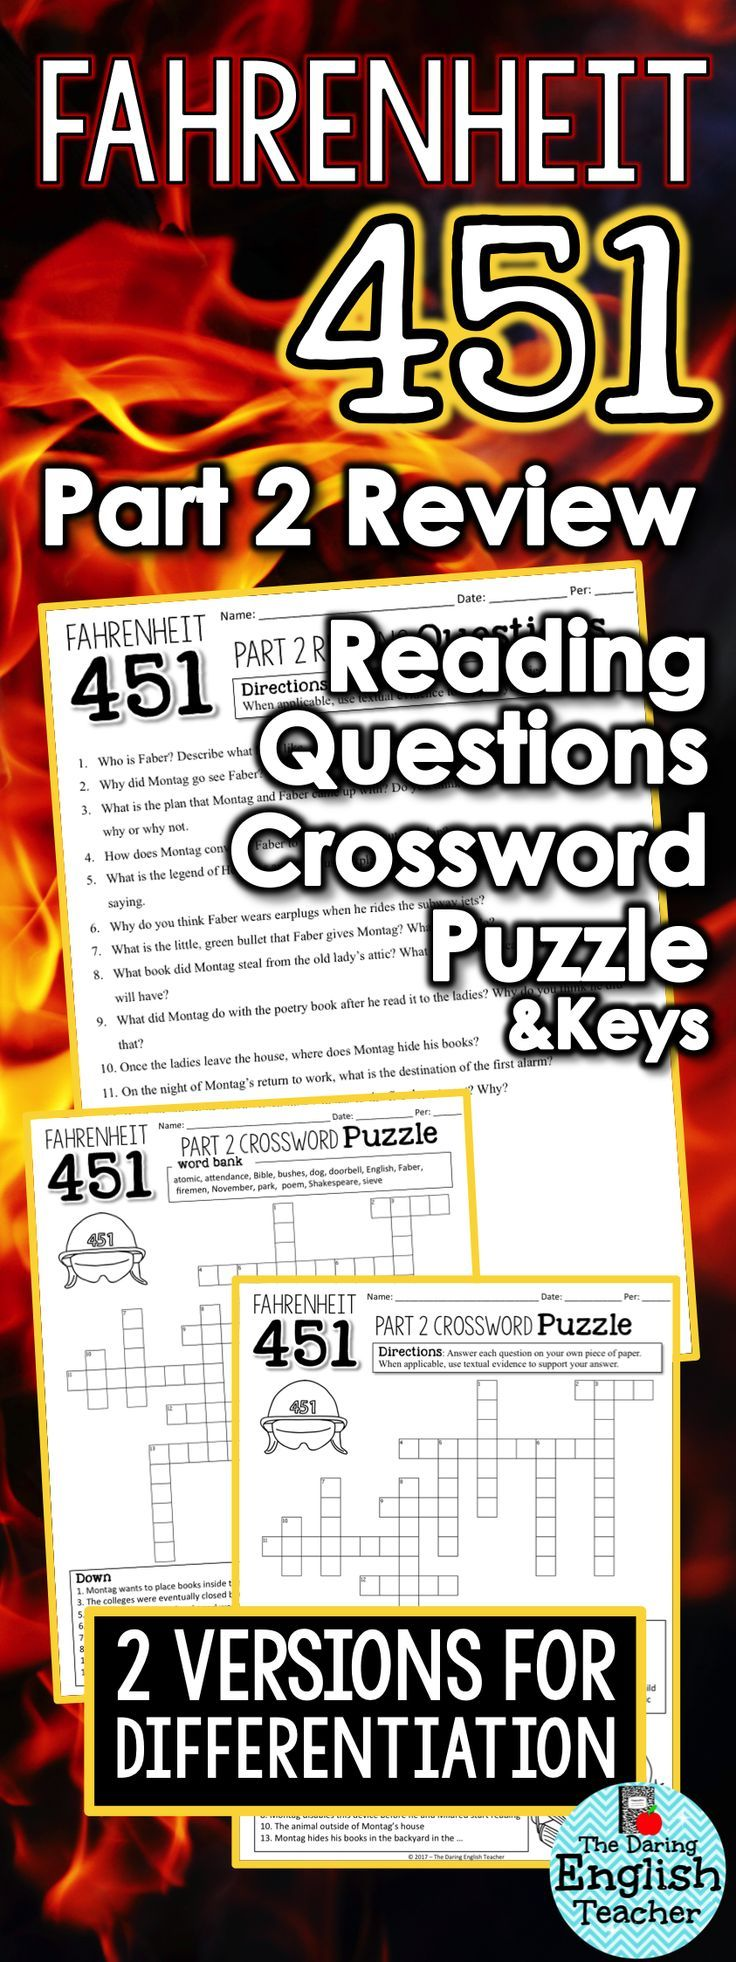 17 best ideas about Word Puzzles on Pinterest | Word puzzle games ...